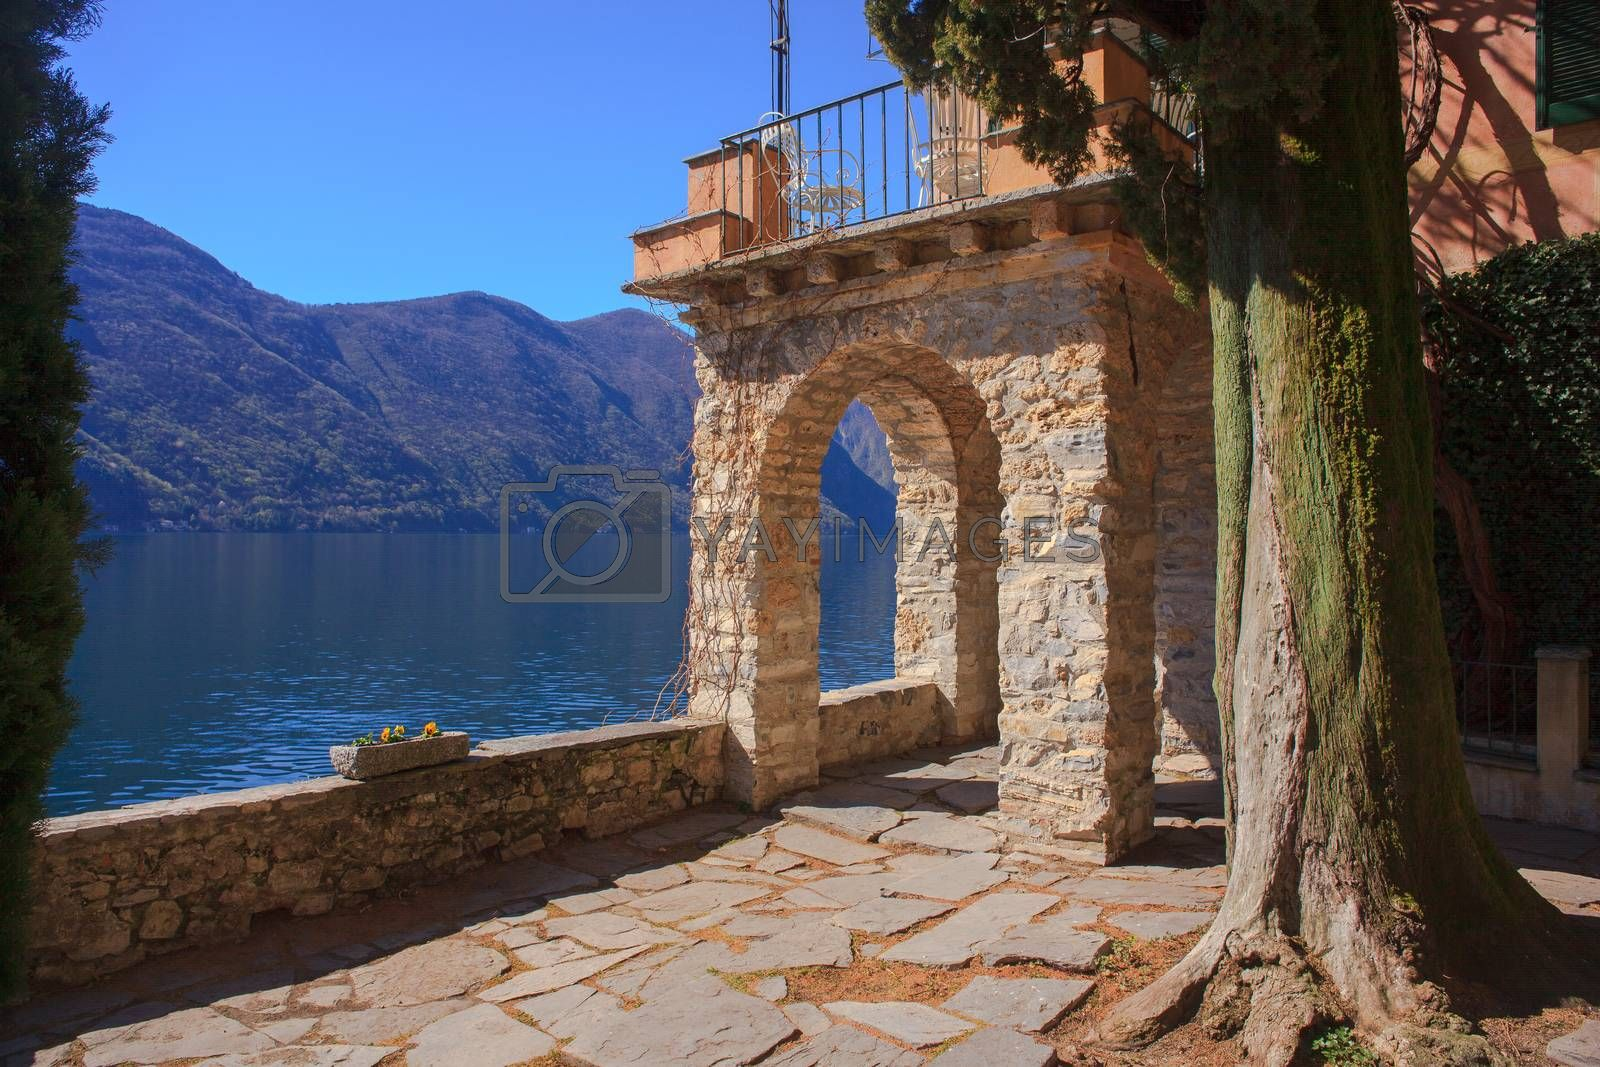 View of arch next to the Lugano lake